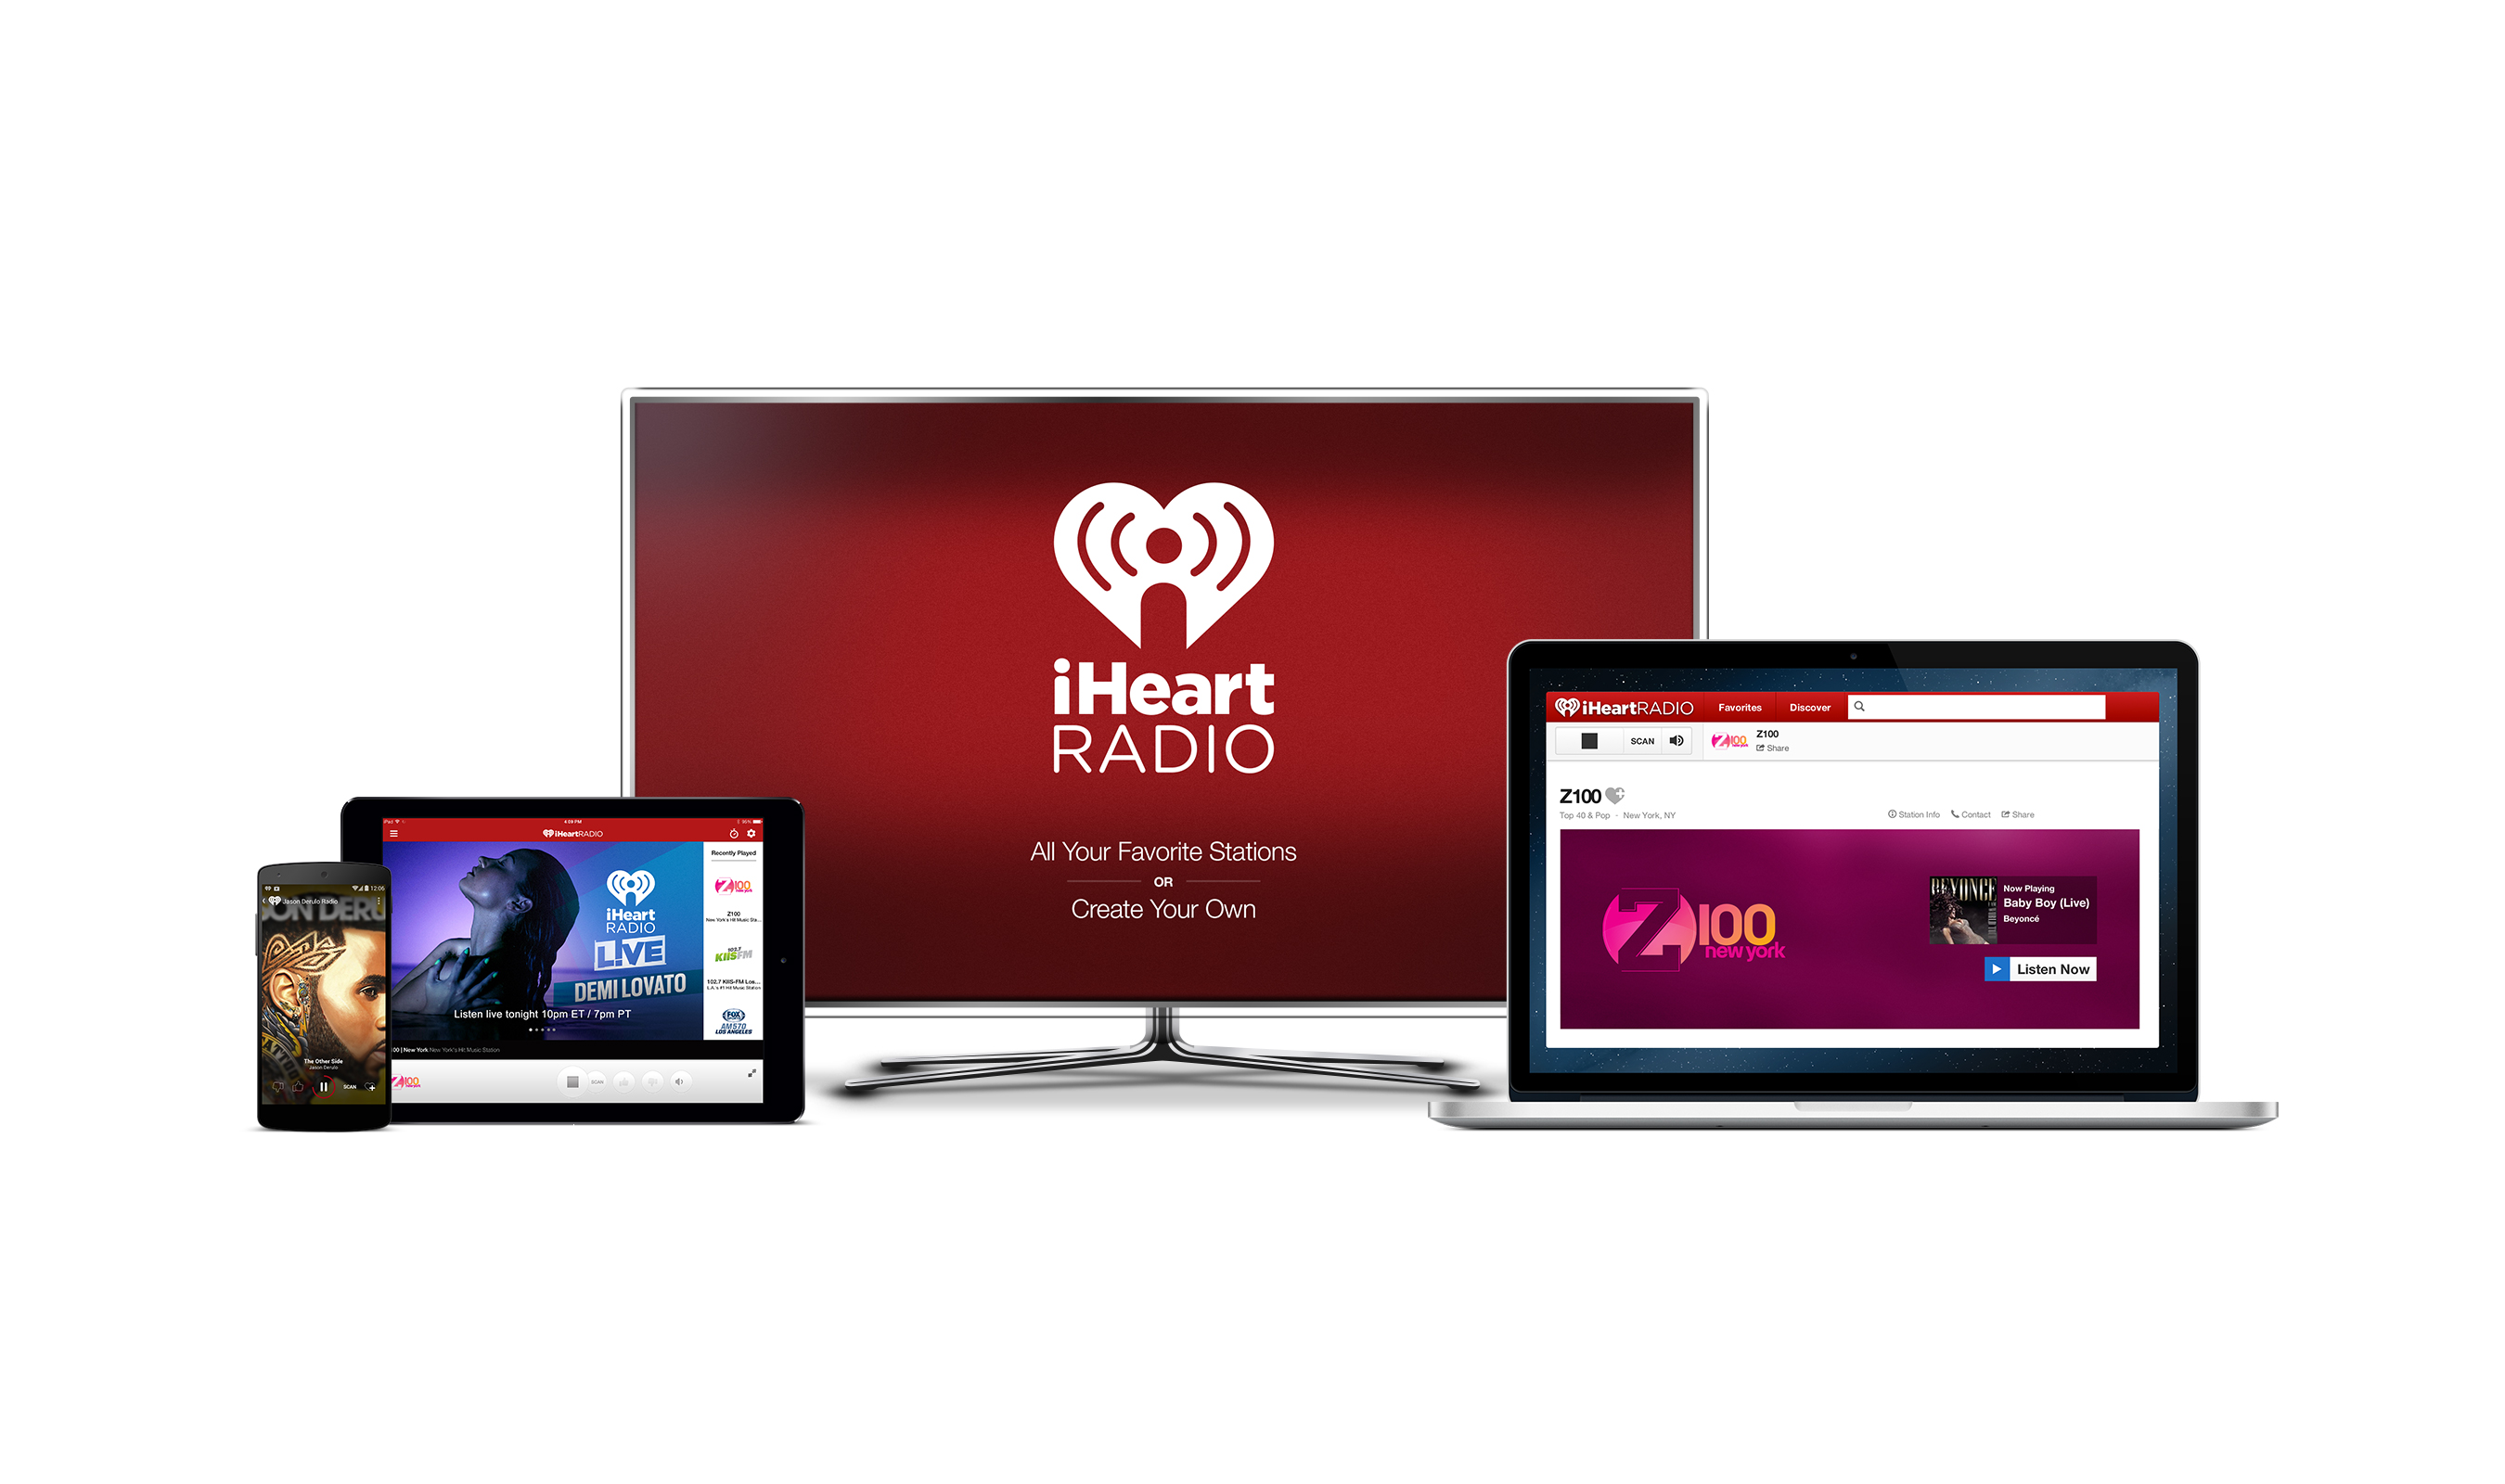 iHeartRadio will launch two paid, on-demand music services